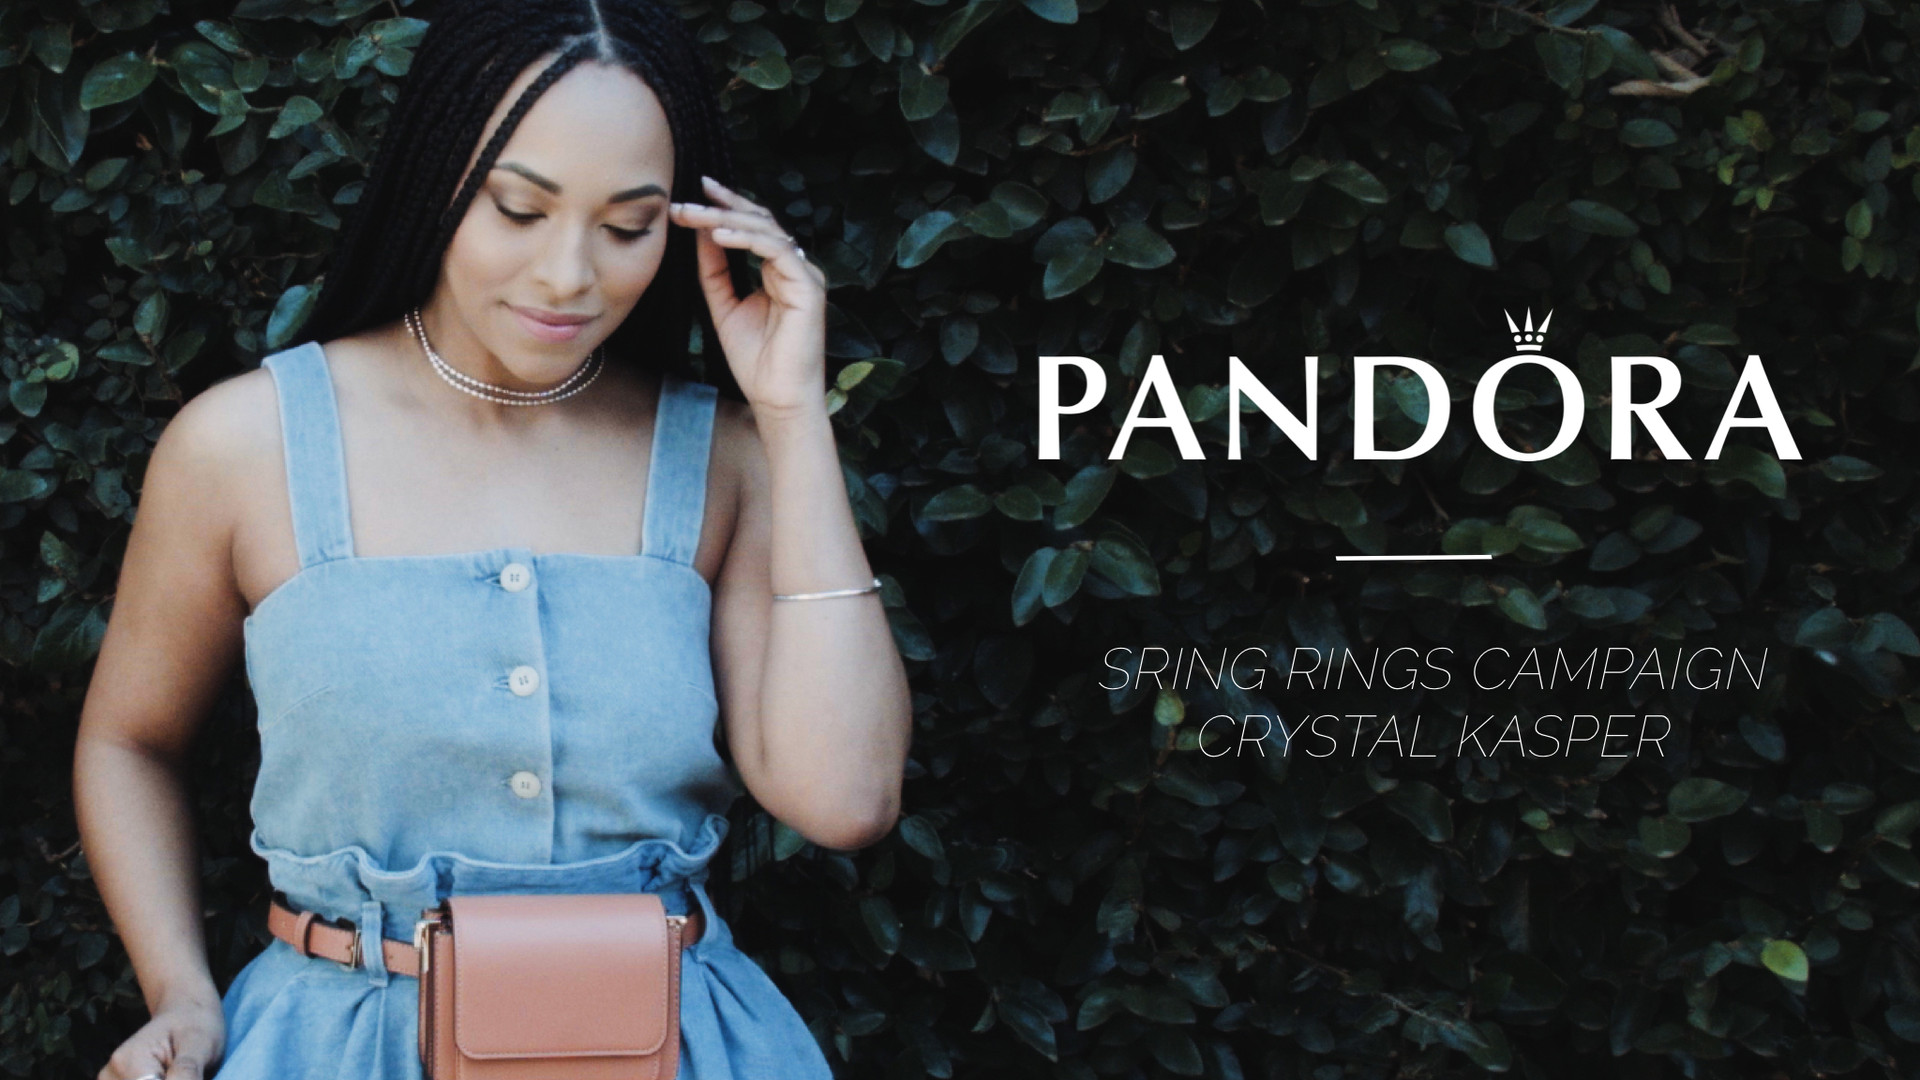 Crystal Kasper for Pandora Spring Rings Campaign